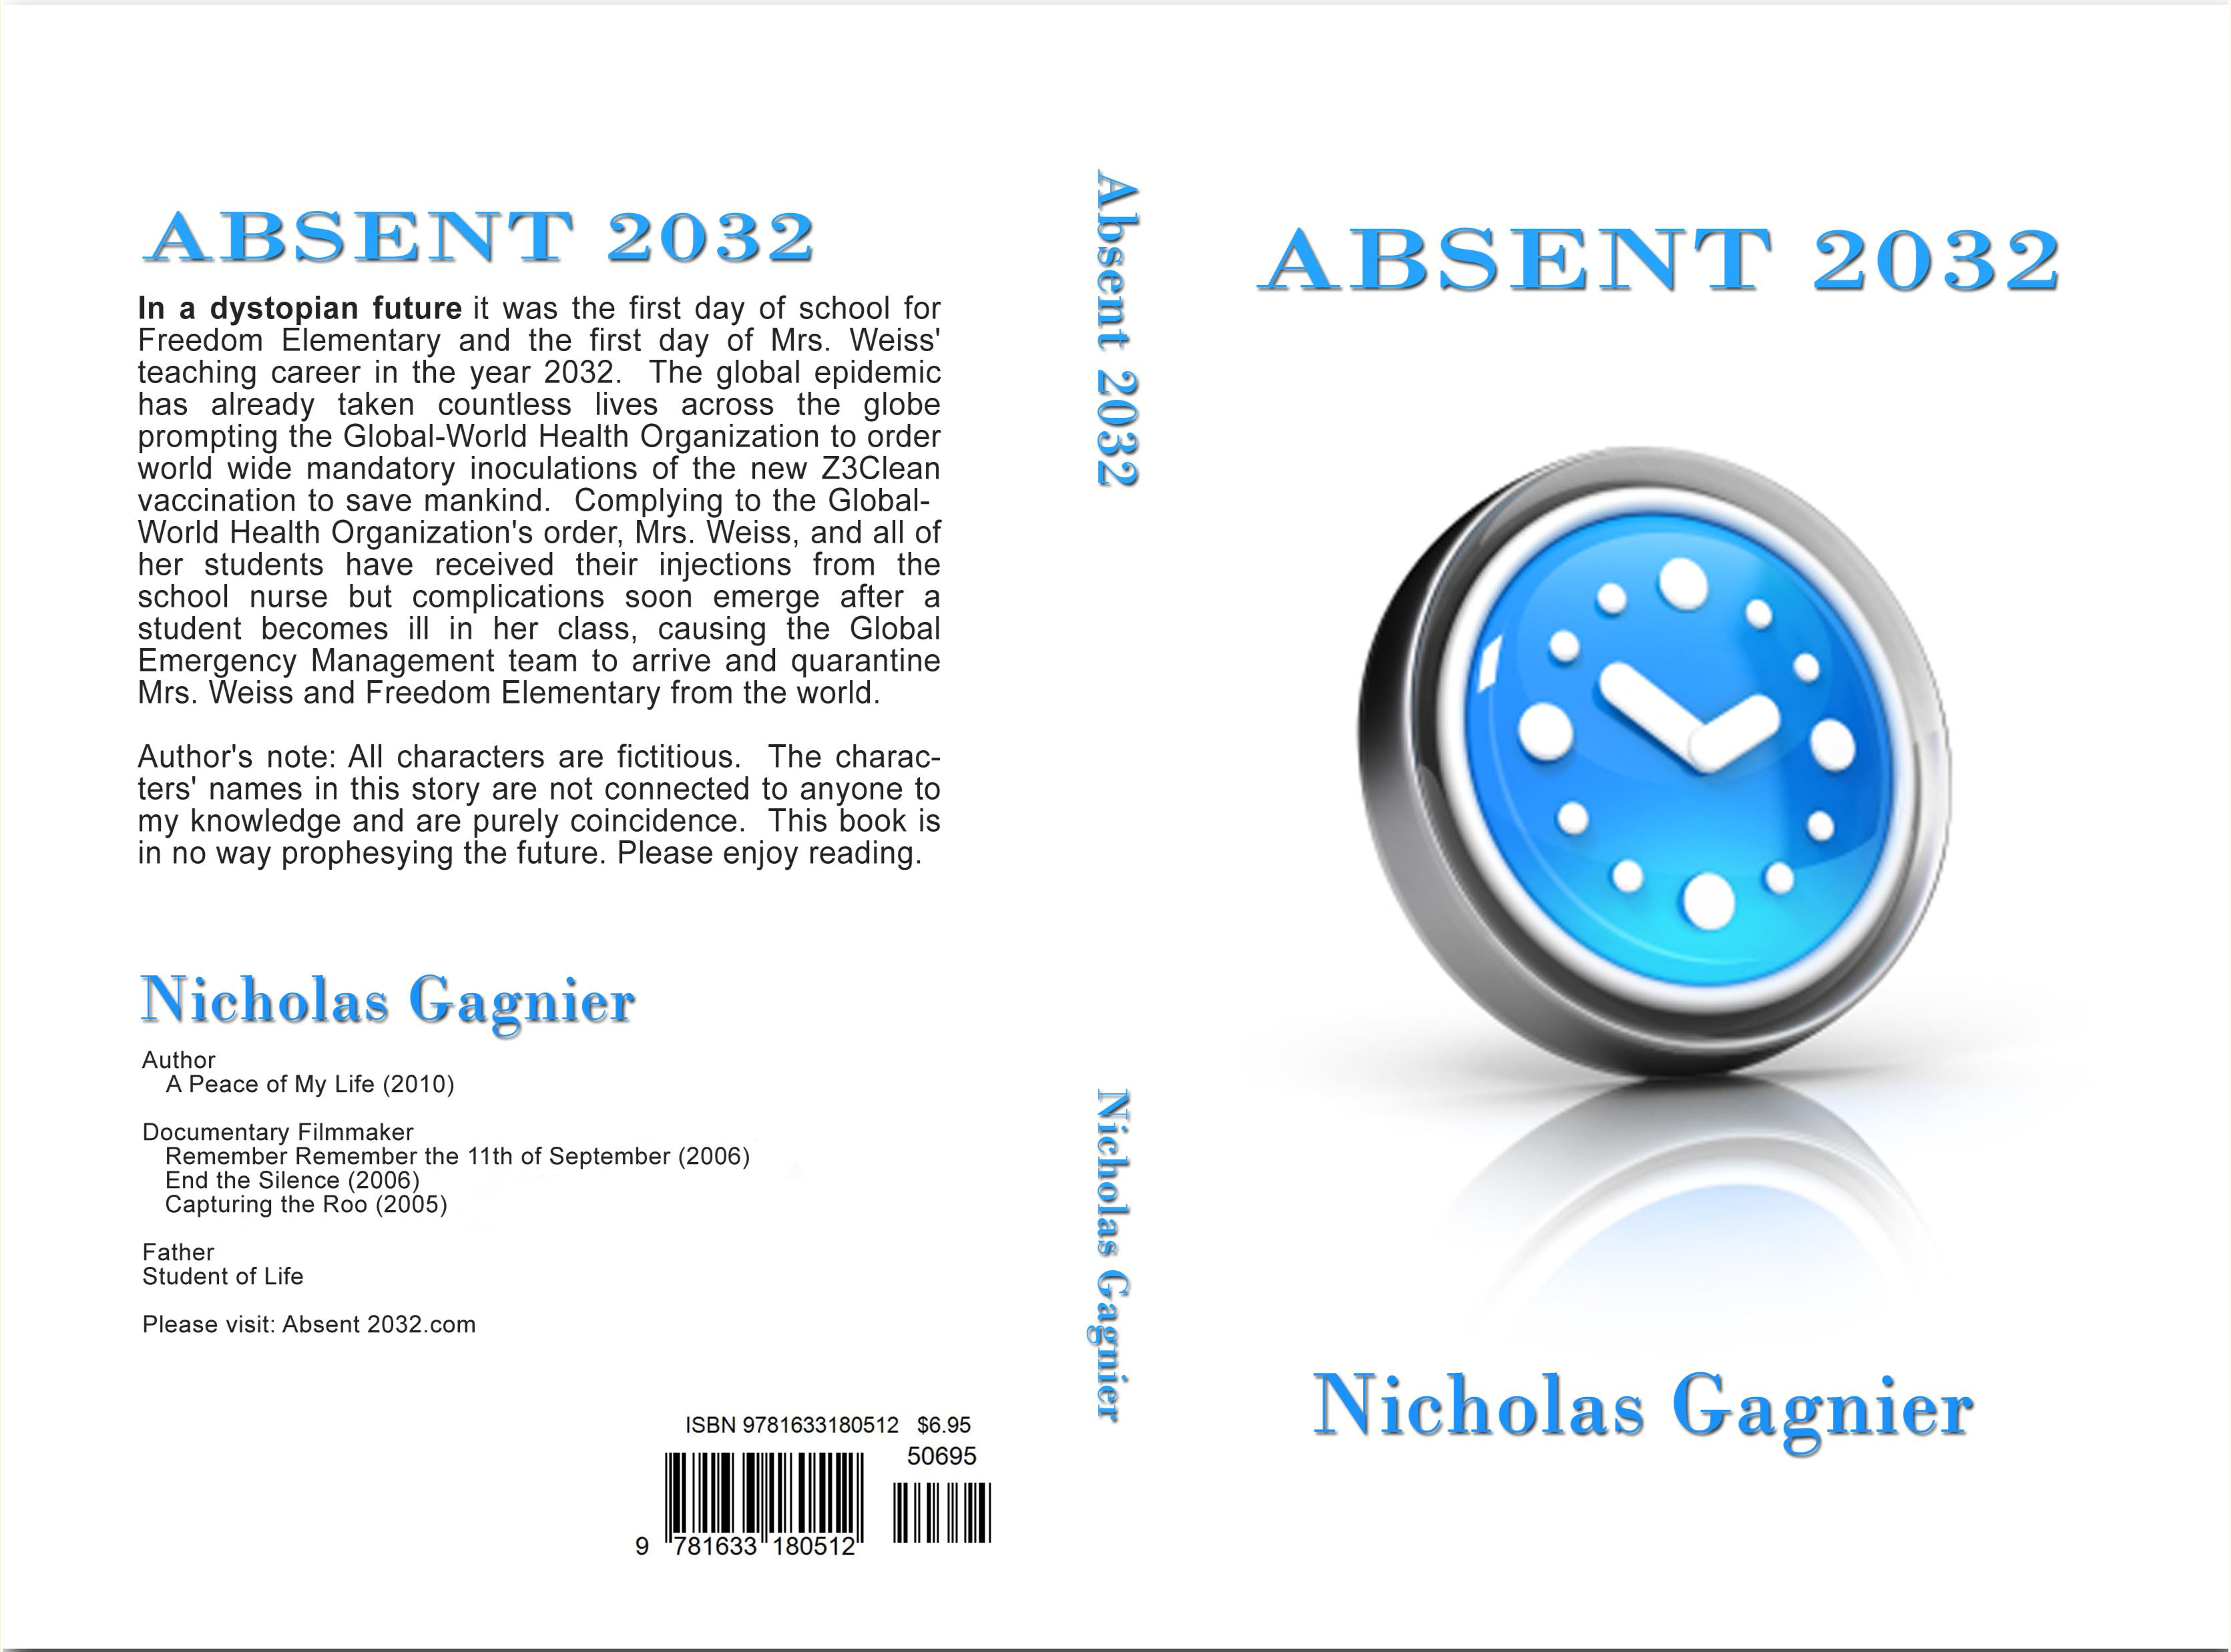 Absent 2032 cover image